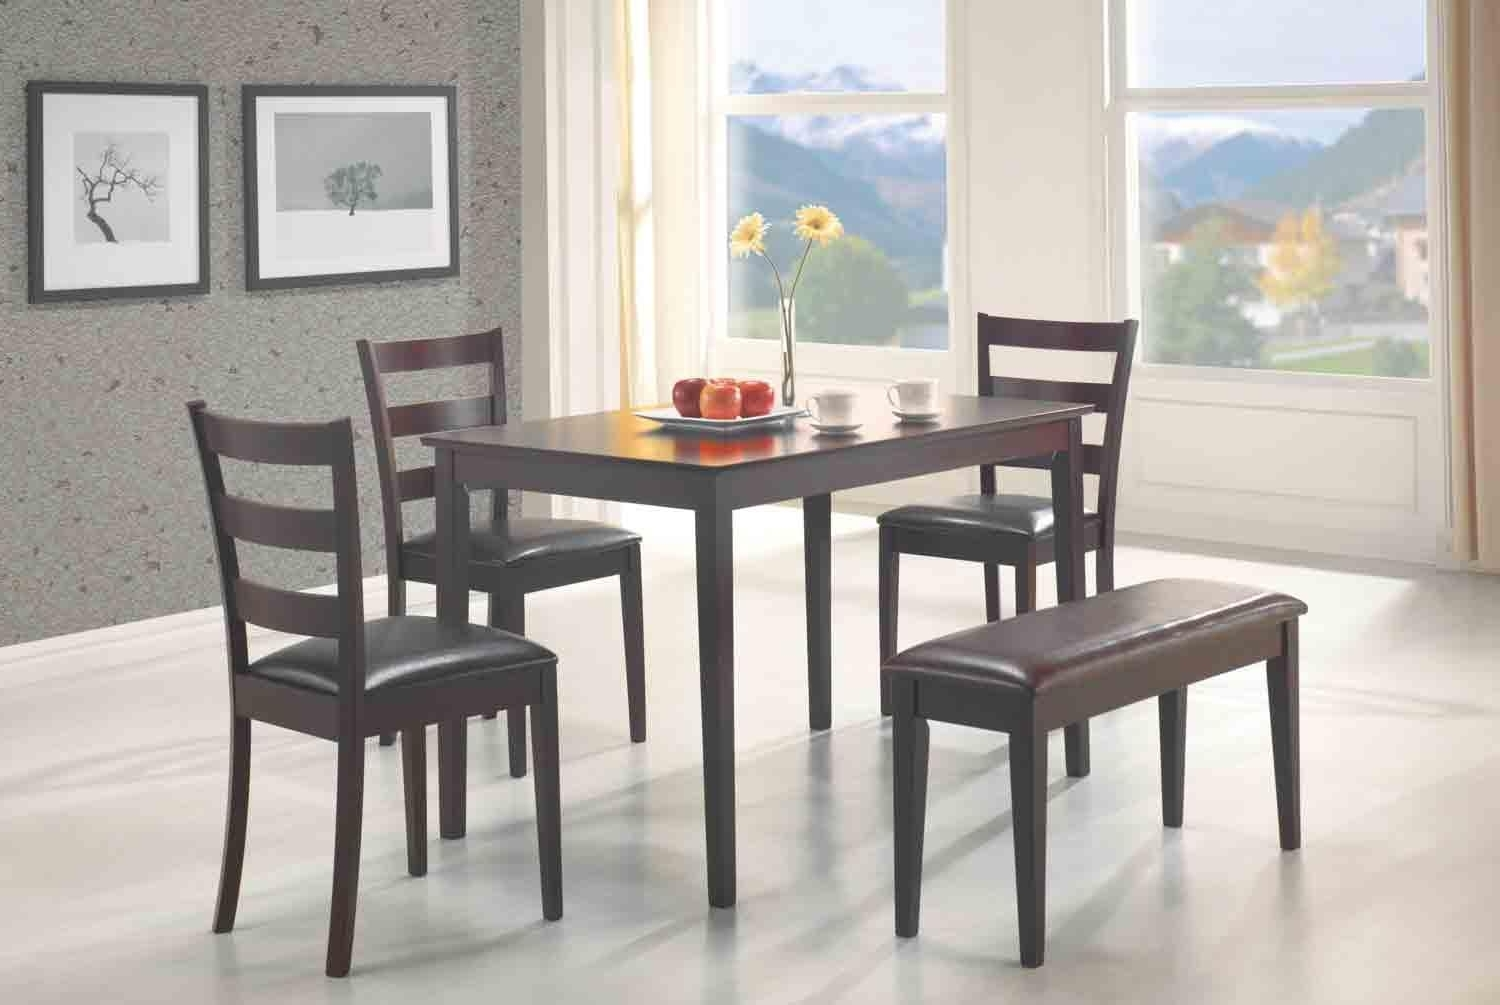 5 Pcs Dining Set Table, 3 Chairs And Bench Dc Furniture Within Favorite Small Dining Tables And Bench Sets (View 12 of 25)